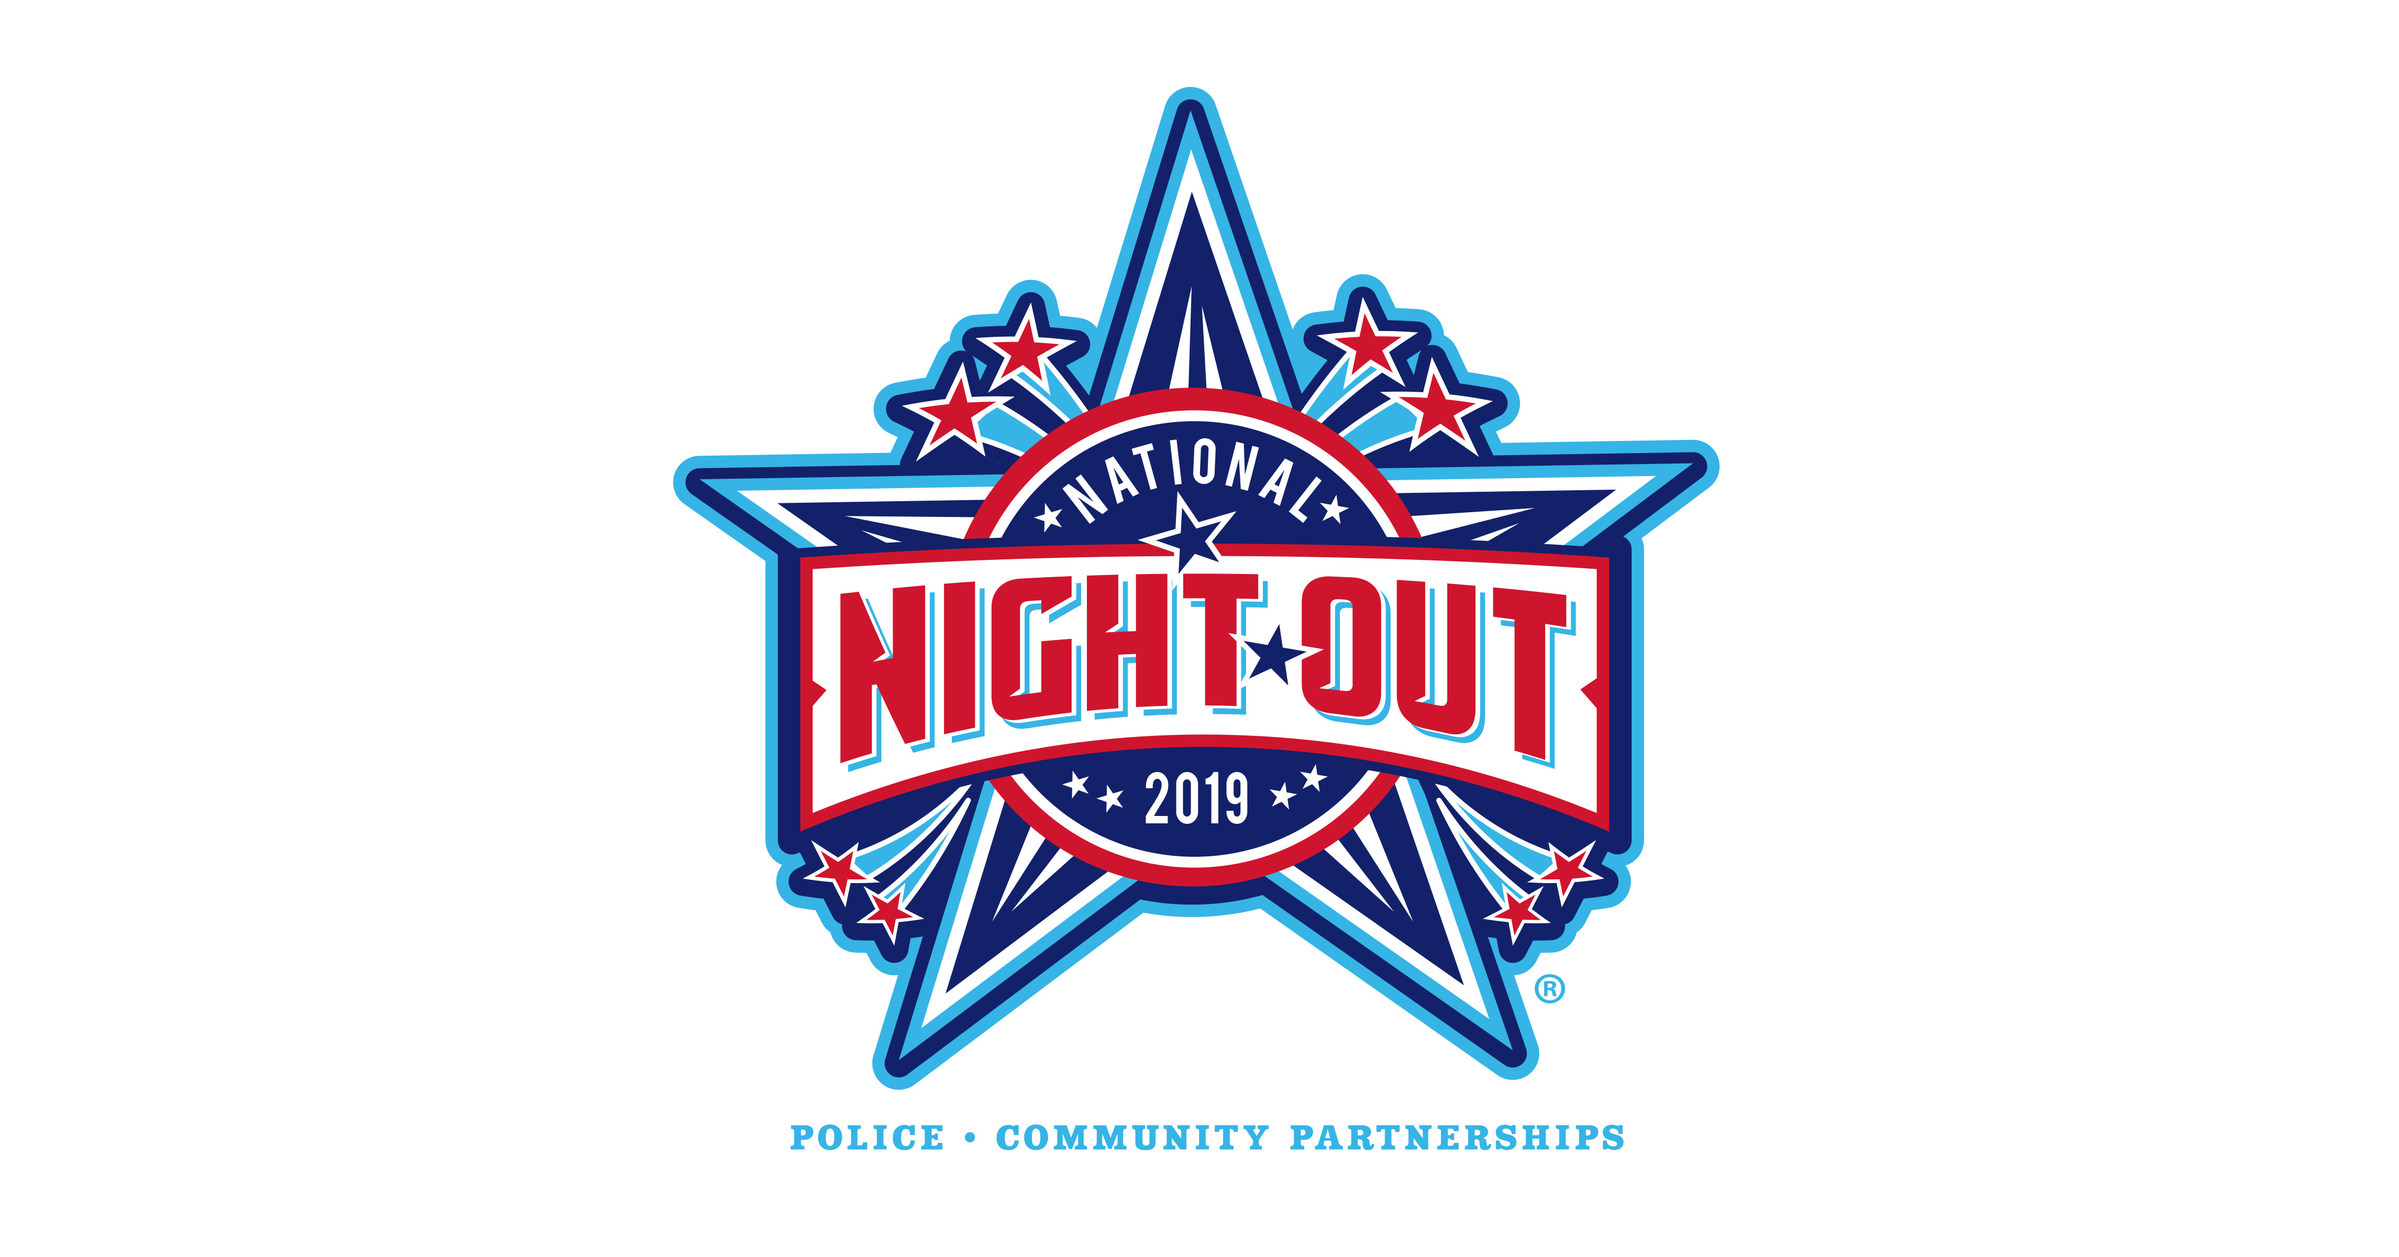 36th Annual National Night Out is August 6th; Neighbors.